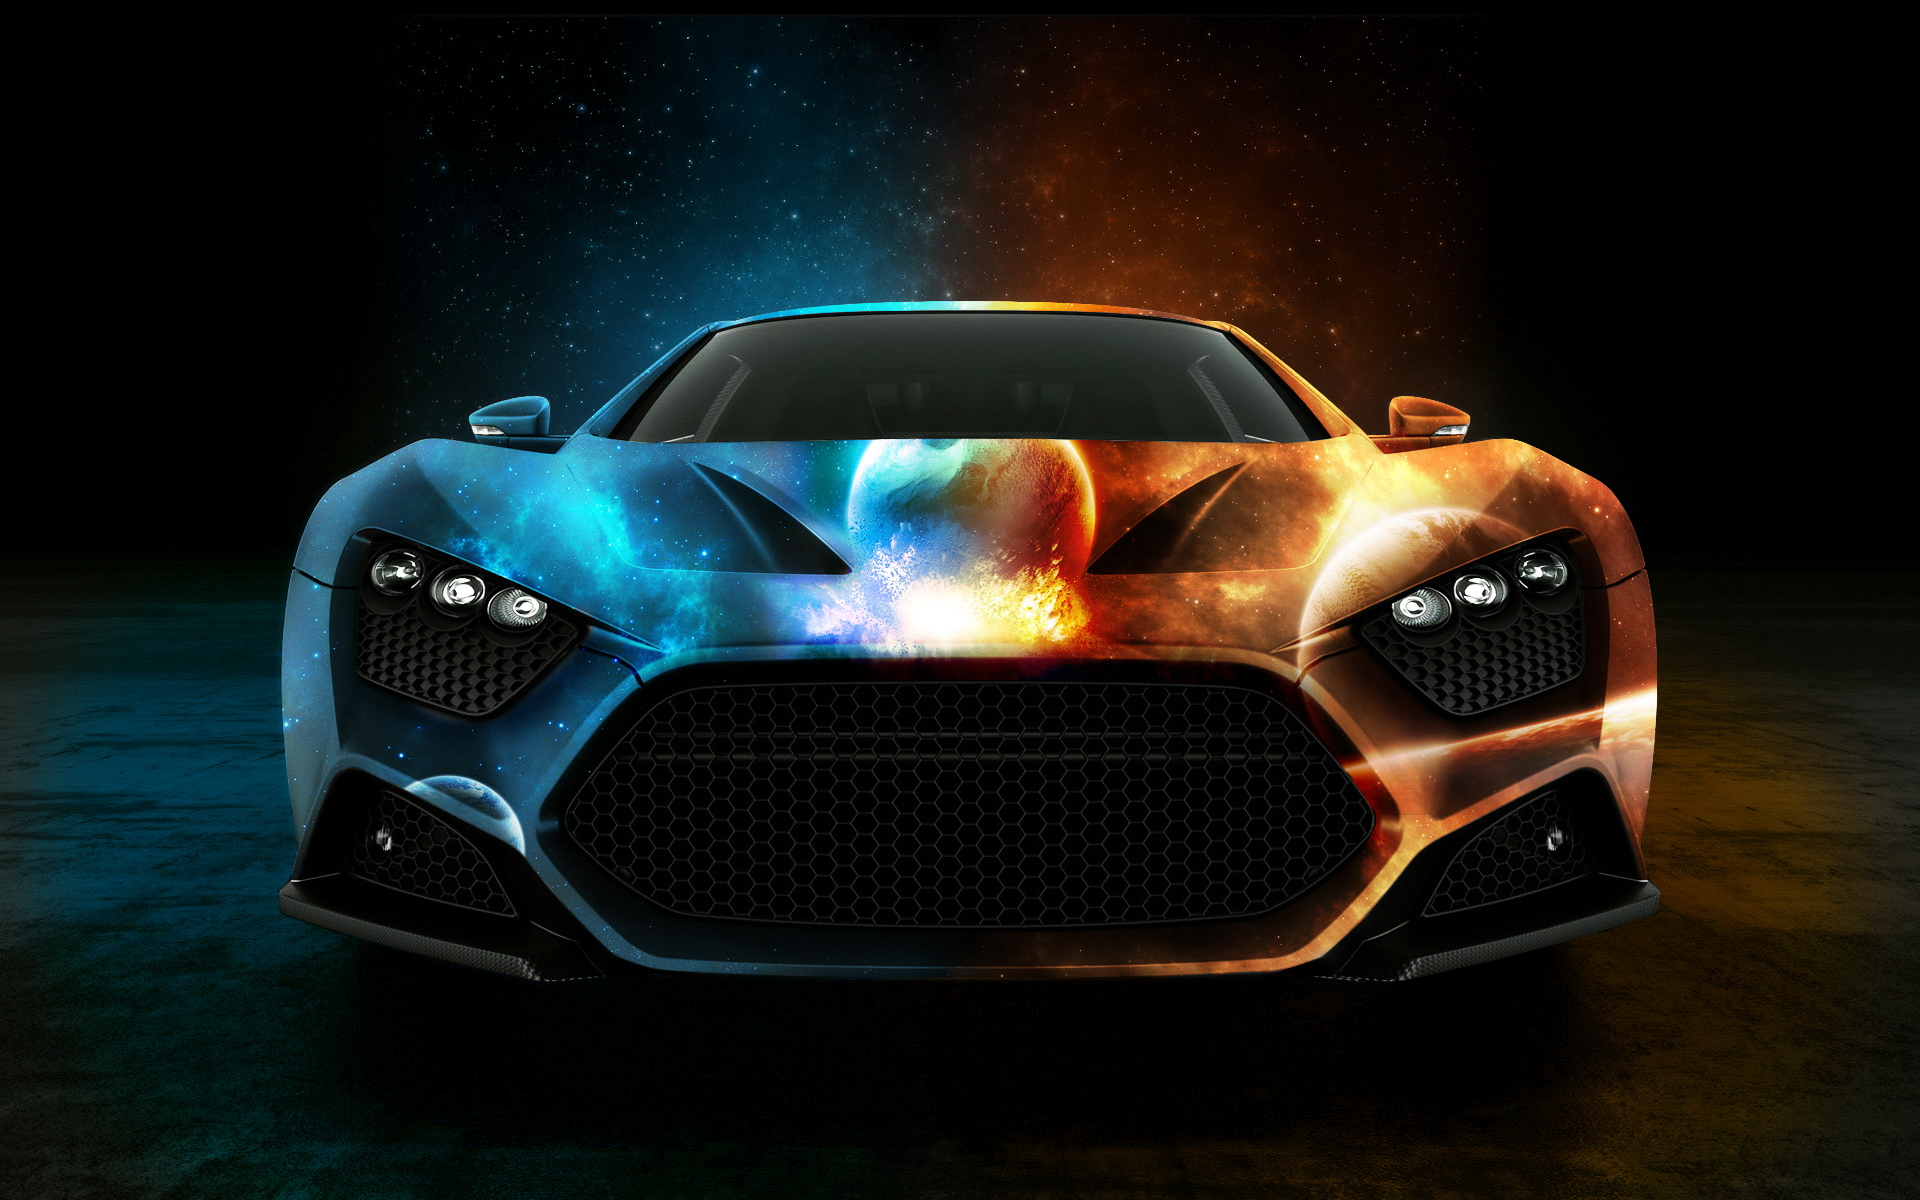 HD Cool Wallpapers for your Desktop Backgrounds 1920x1200